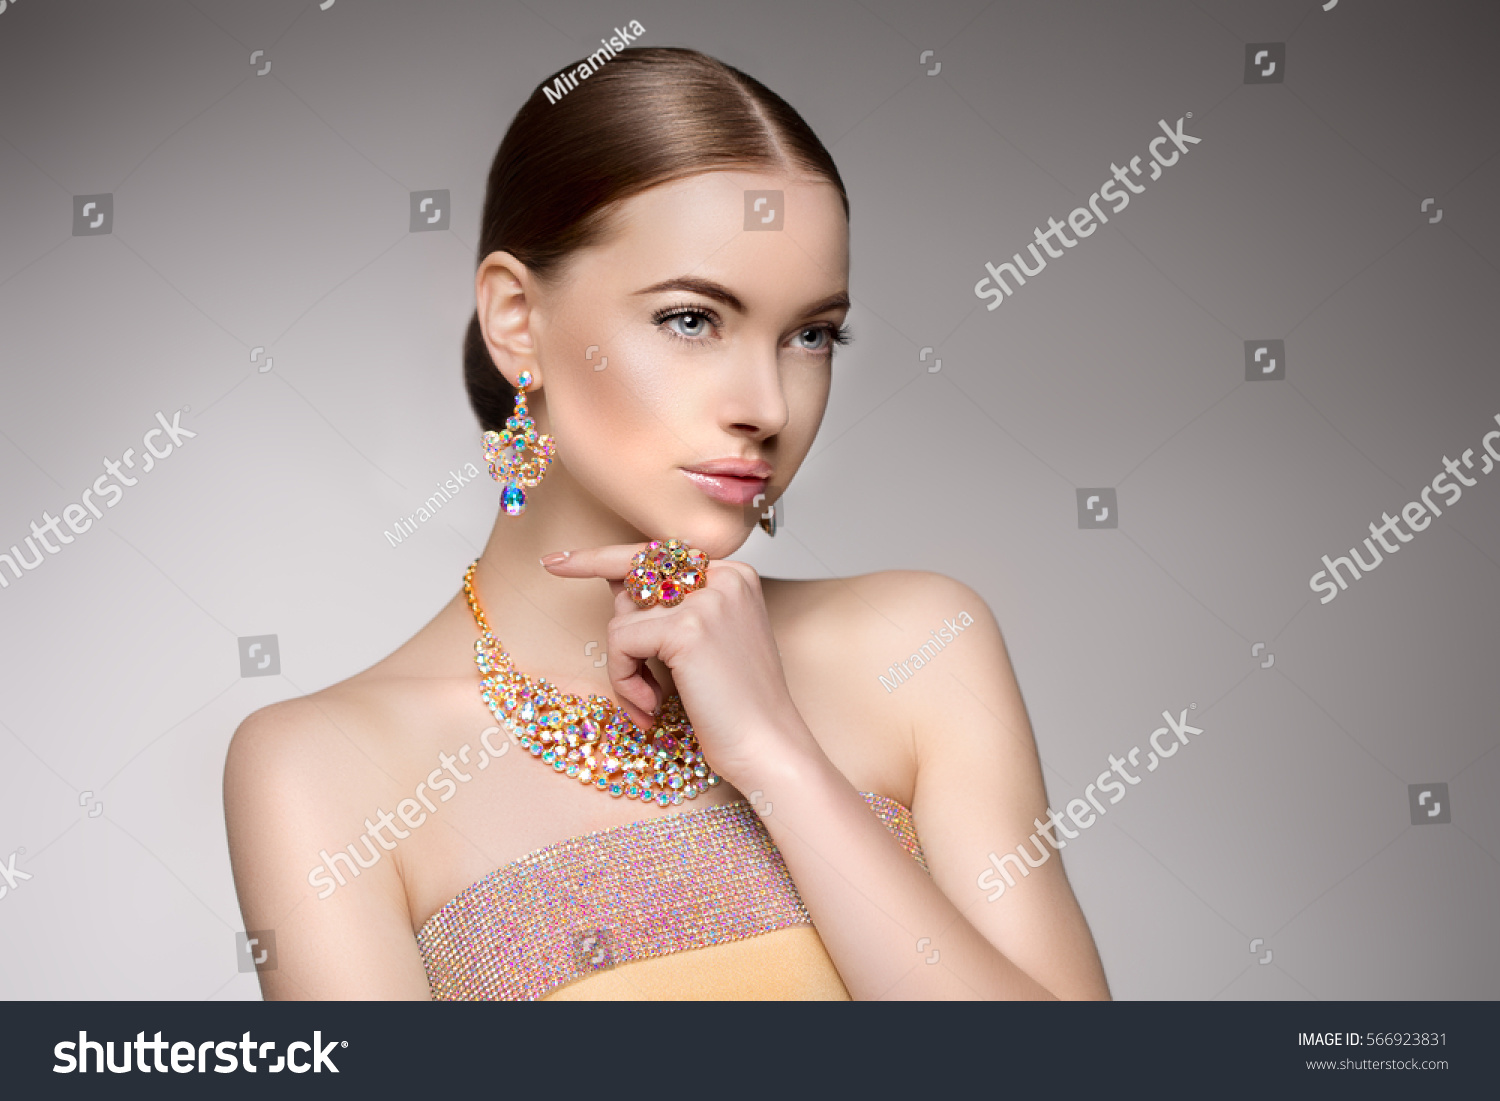 beautiful photo woman edwardderule with manicure stock by stylish depositphotos earrings and